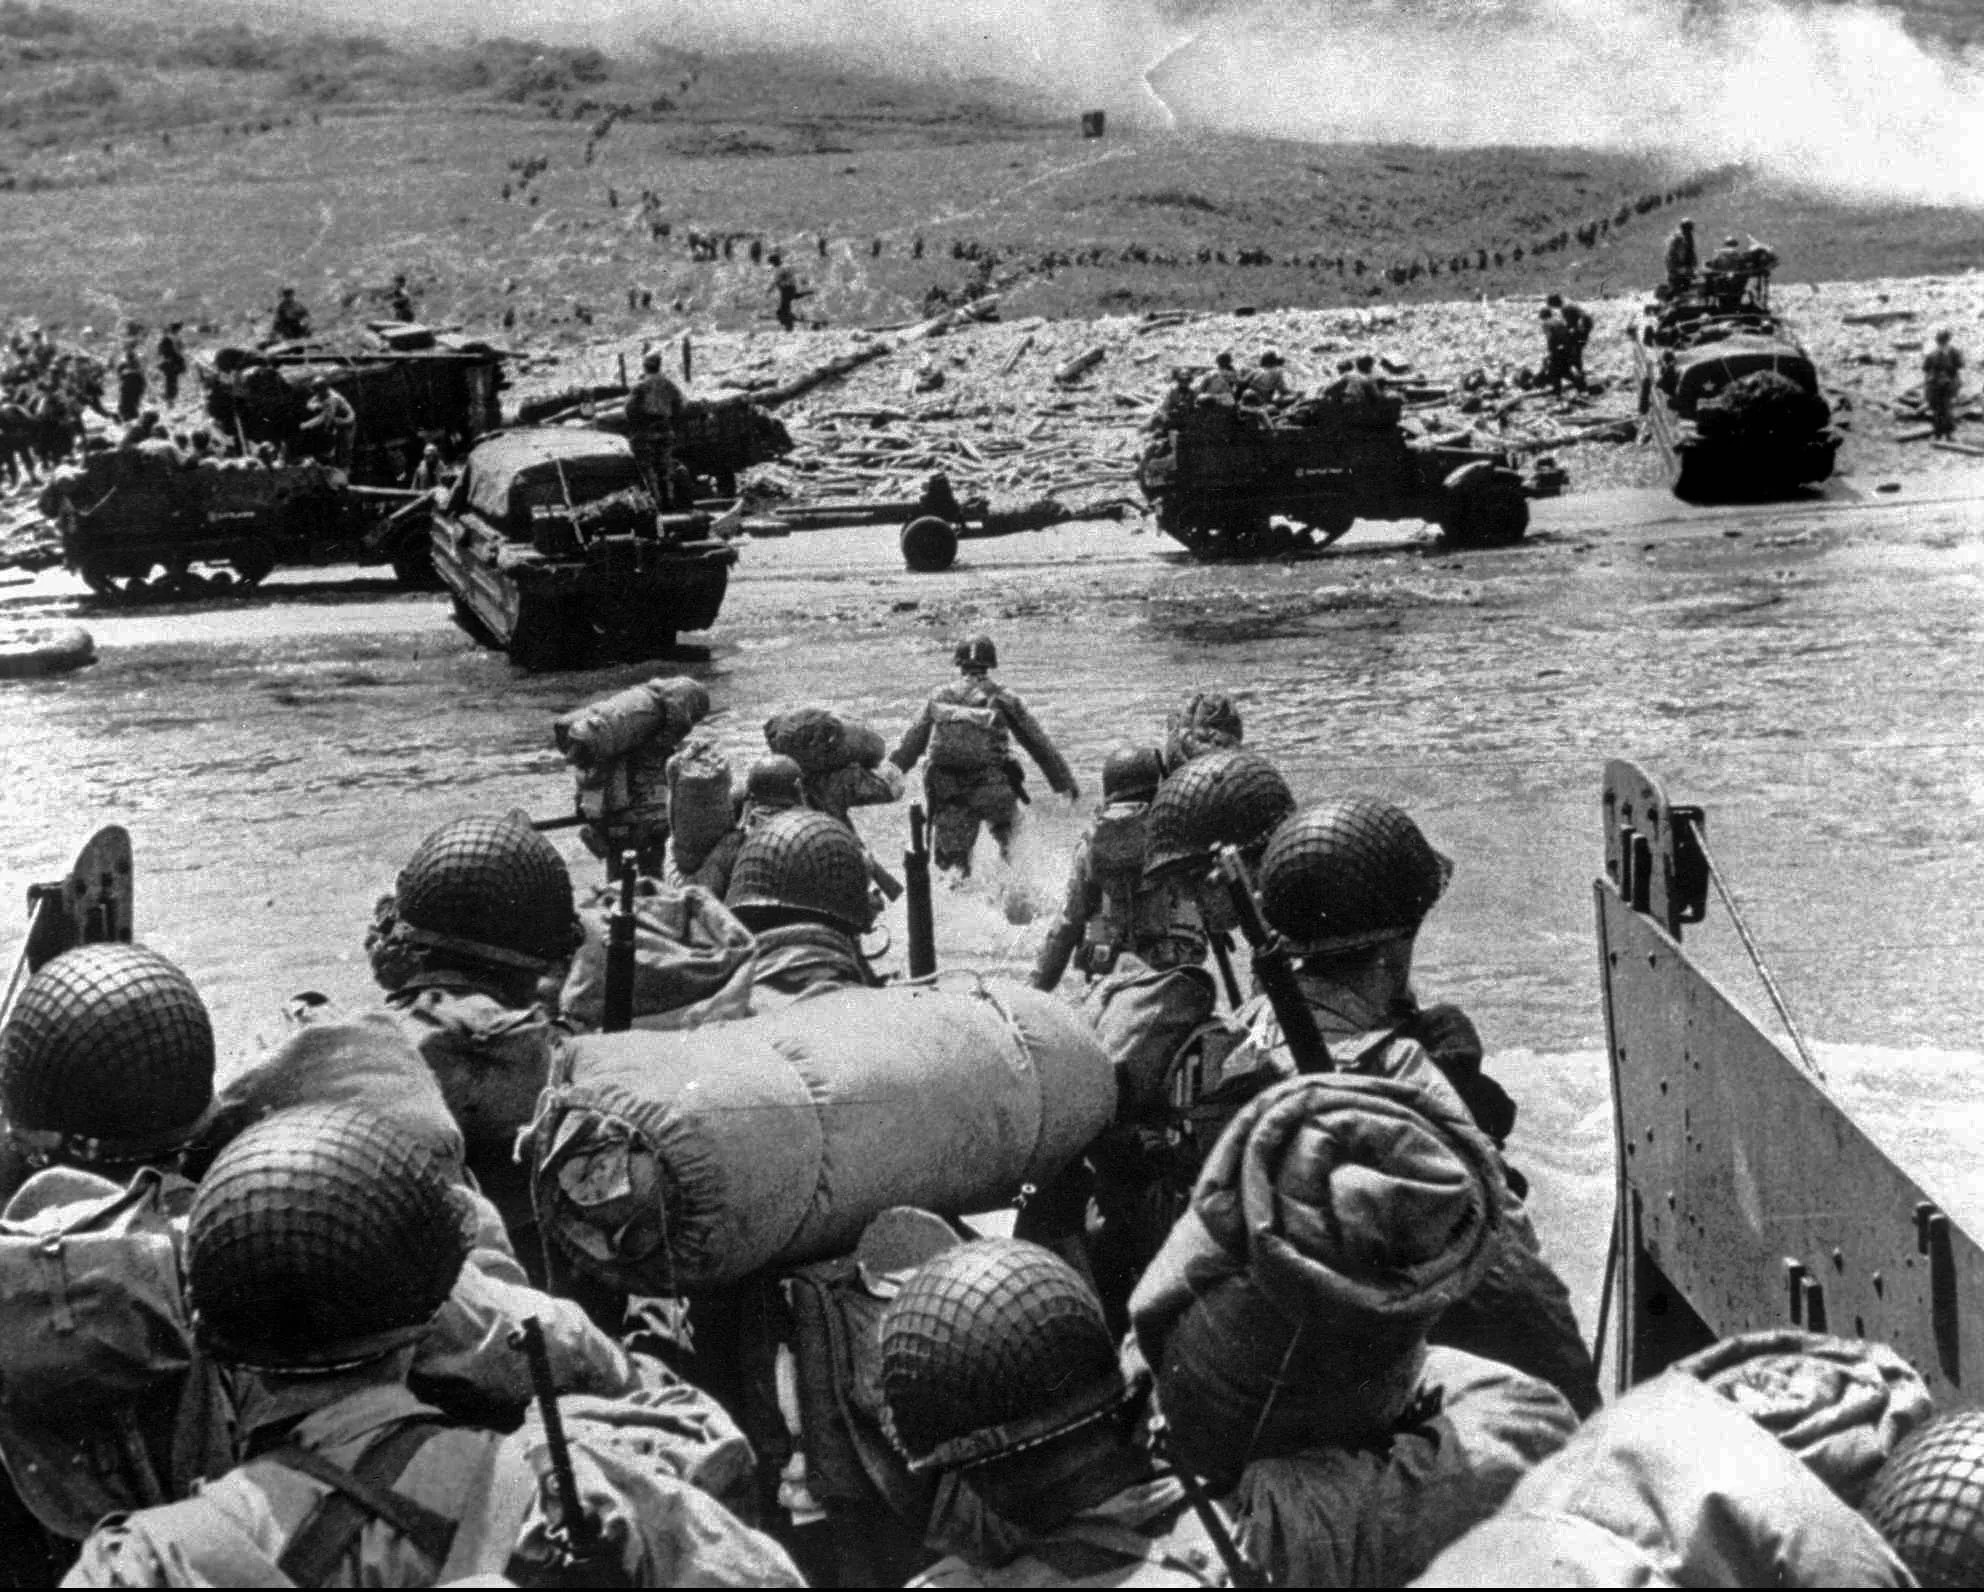 D Day Photos From Normandy To Mark 75th Anniversary Of D